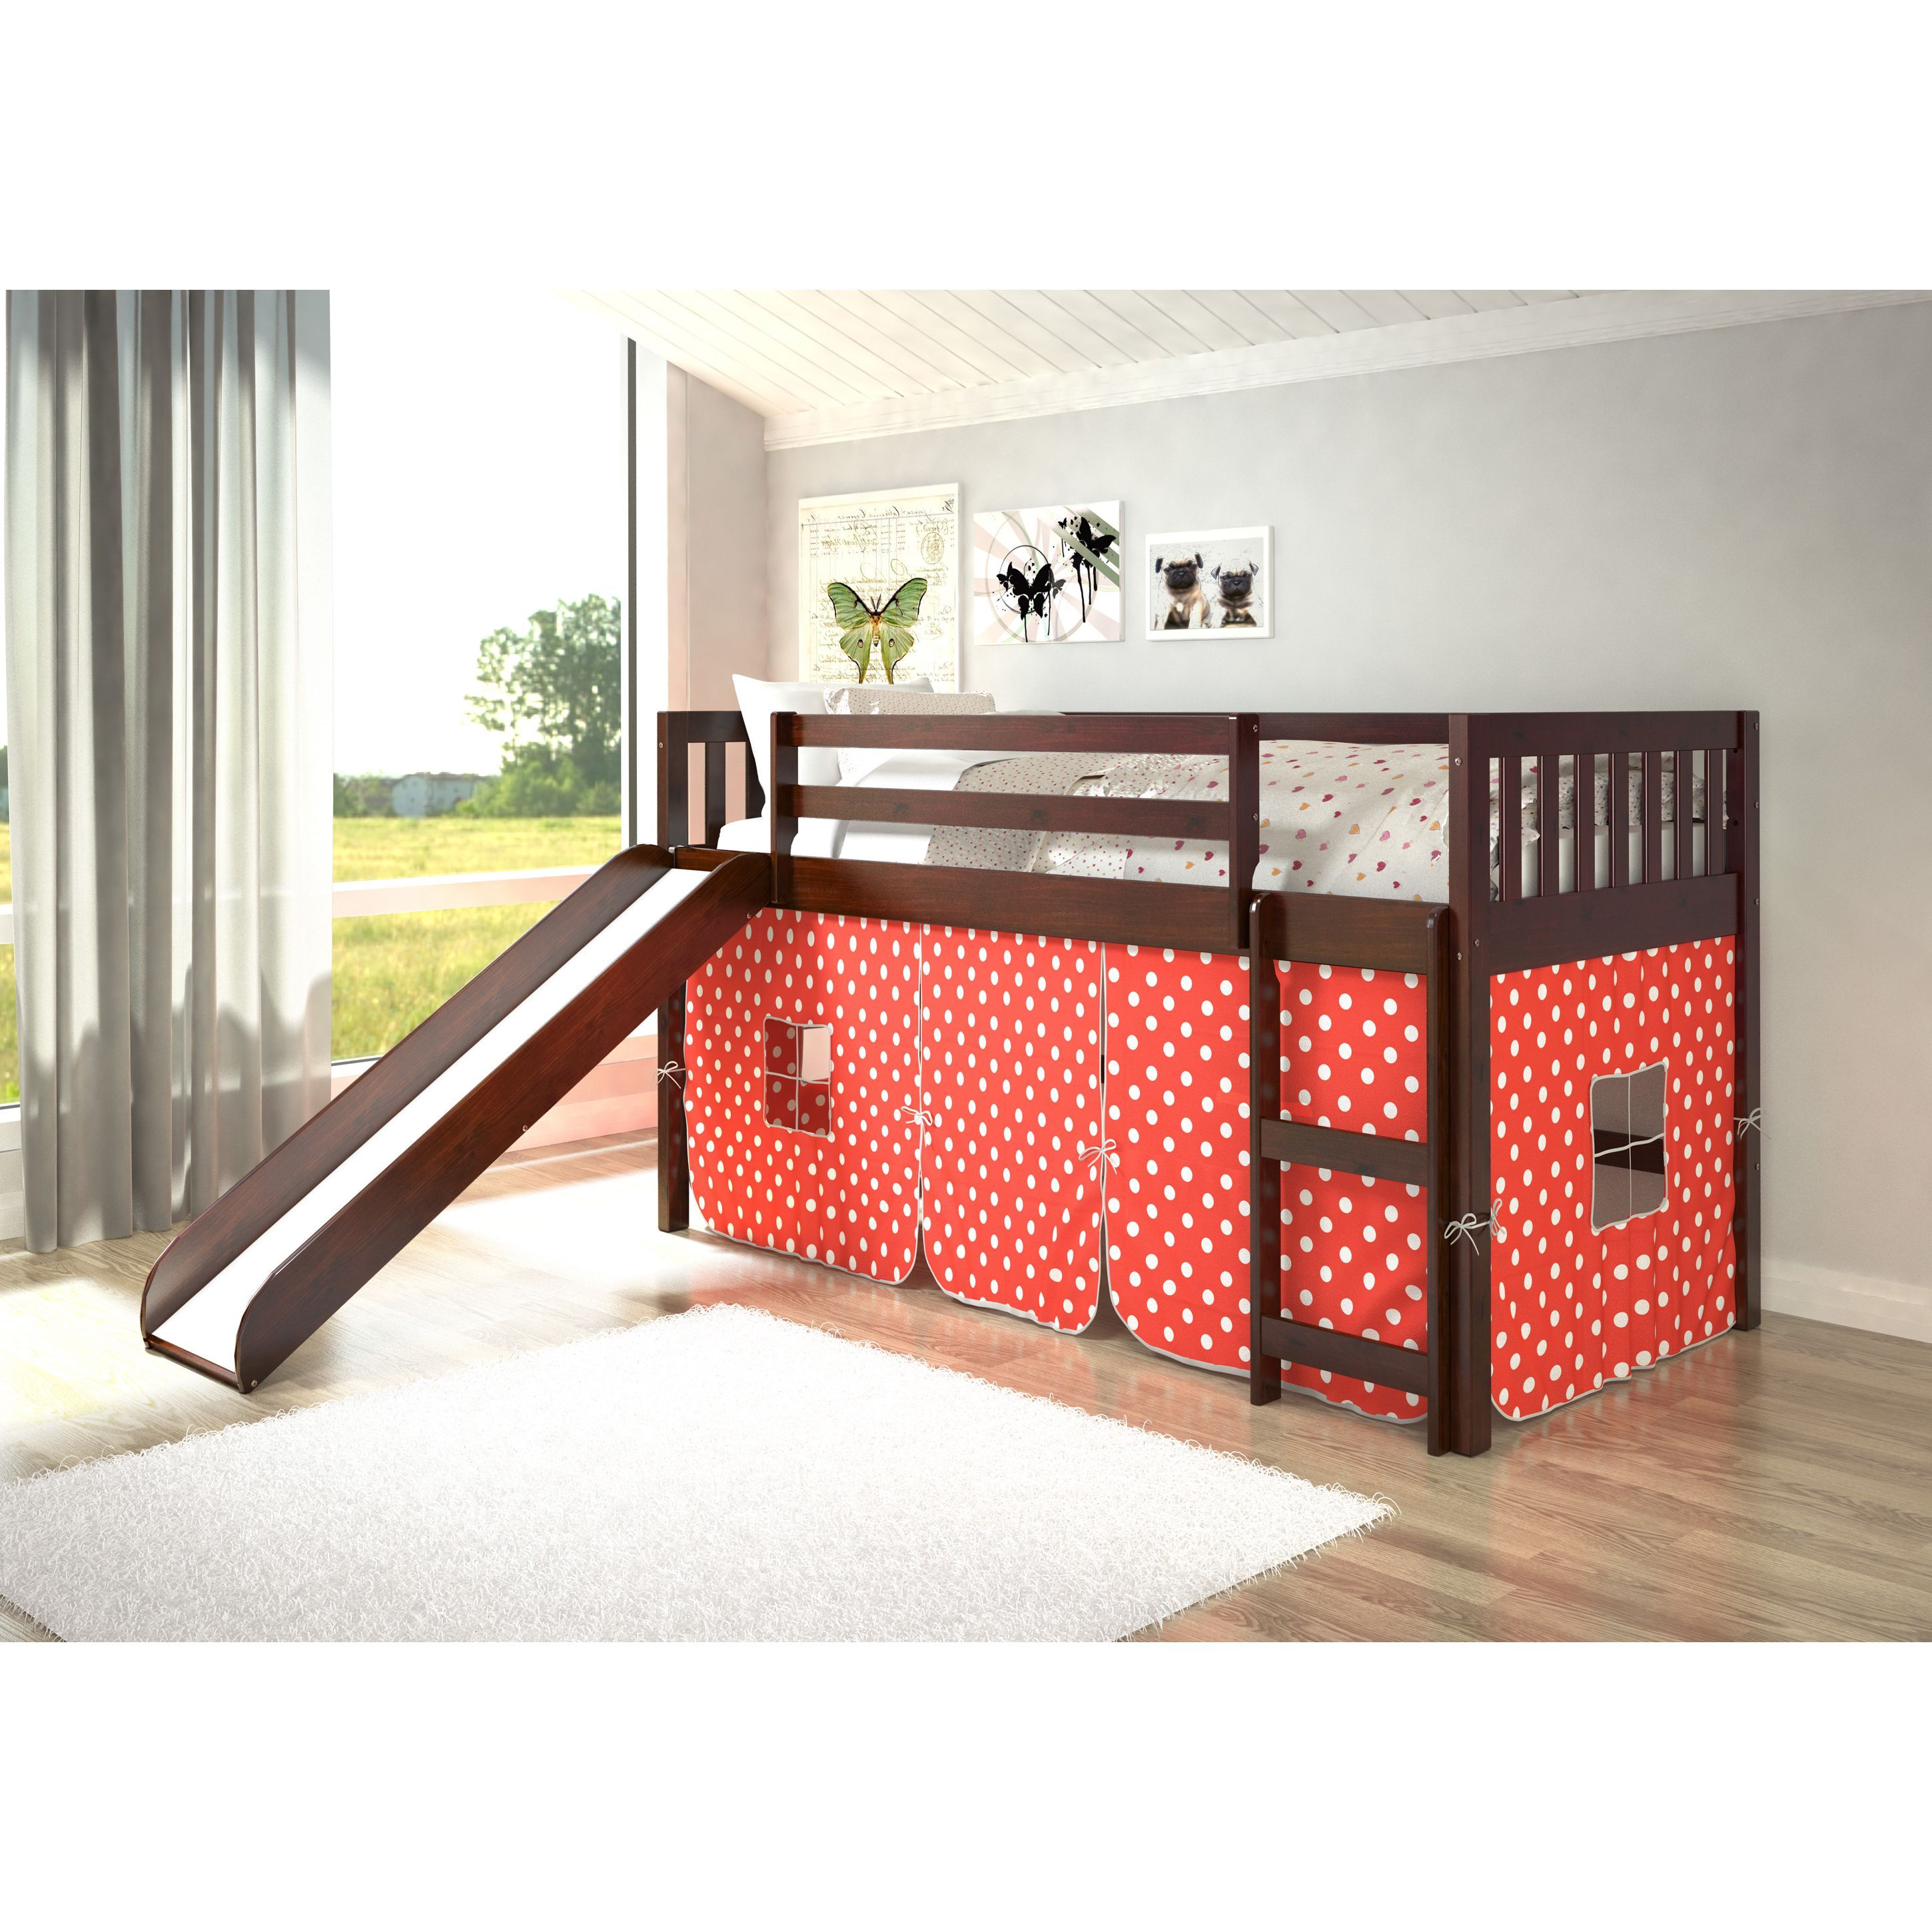 Loft bunk bed with slide  Donco Kids Mission Tent Loft Dark Cappuccino Twin Bed with Slide